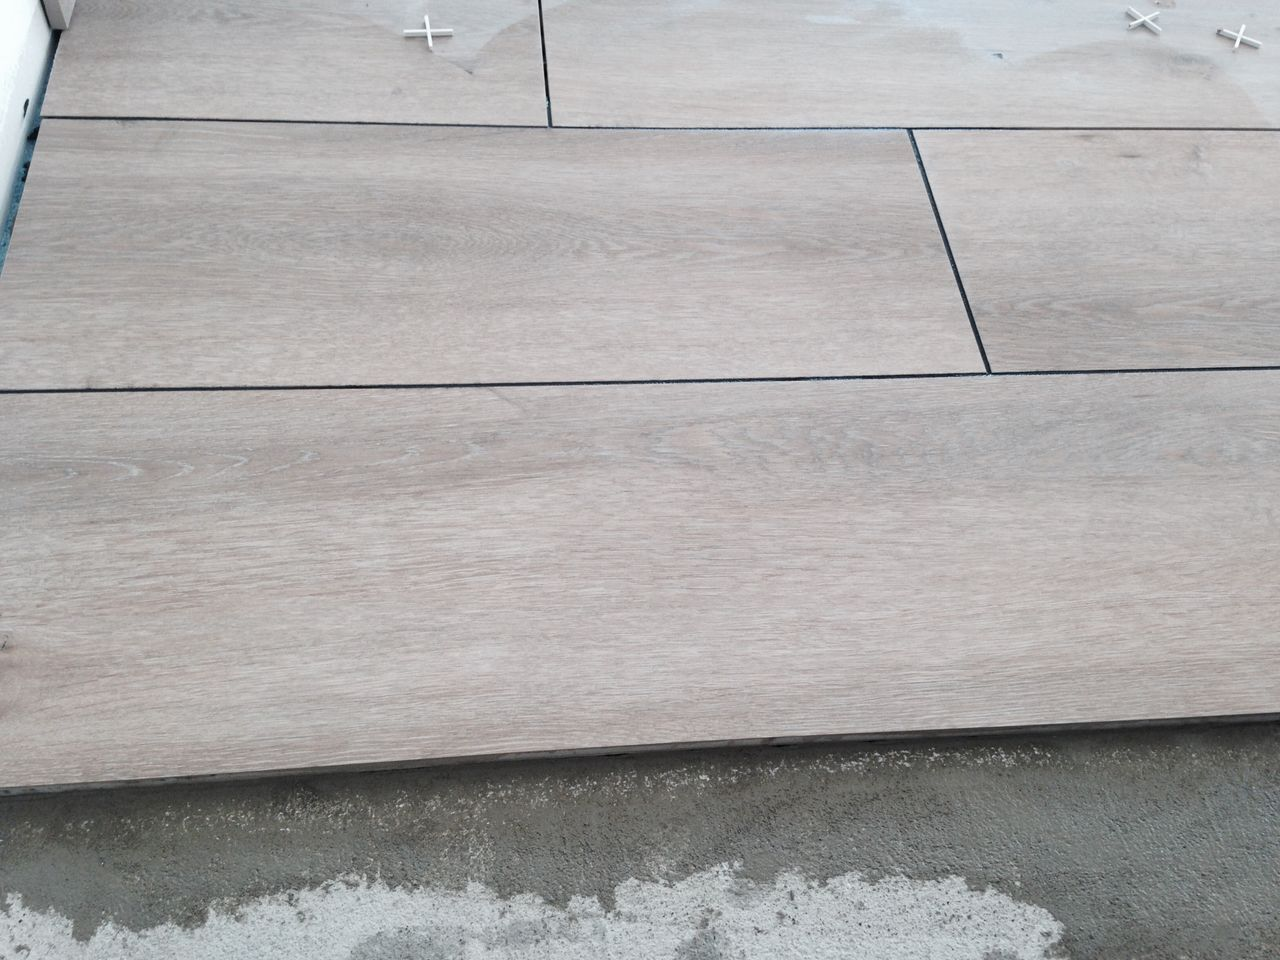 Quelle couleur de joints pour carrelage imitation parquet for Couleur gris anthracite